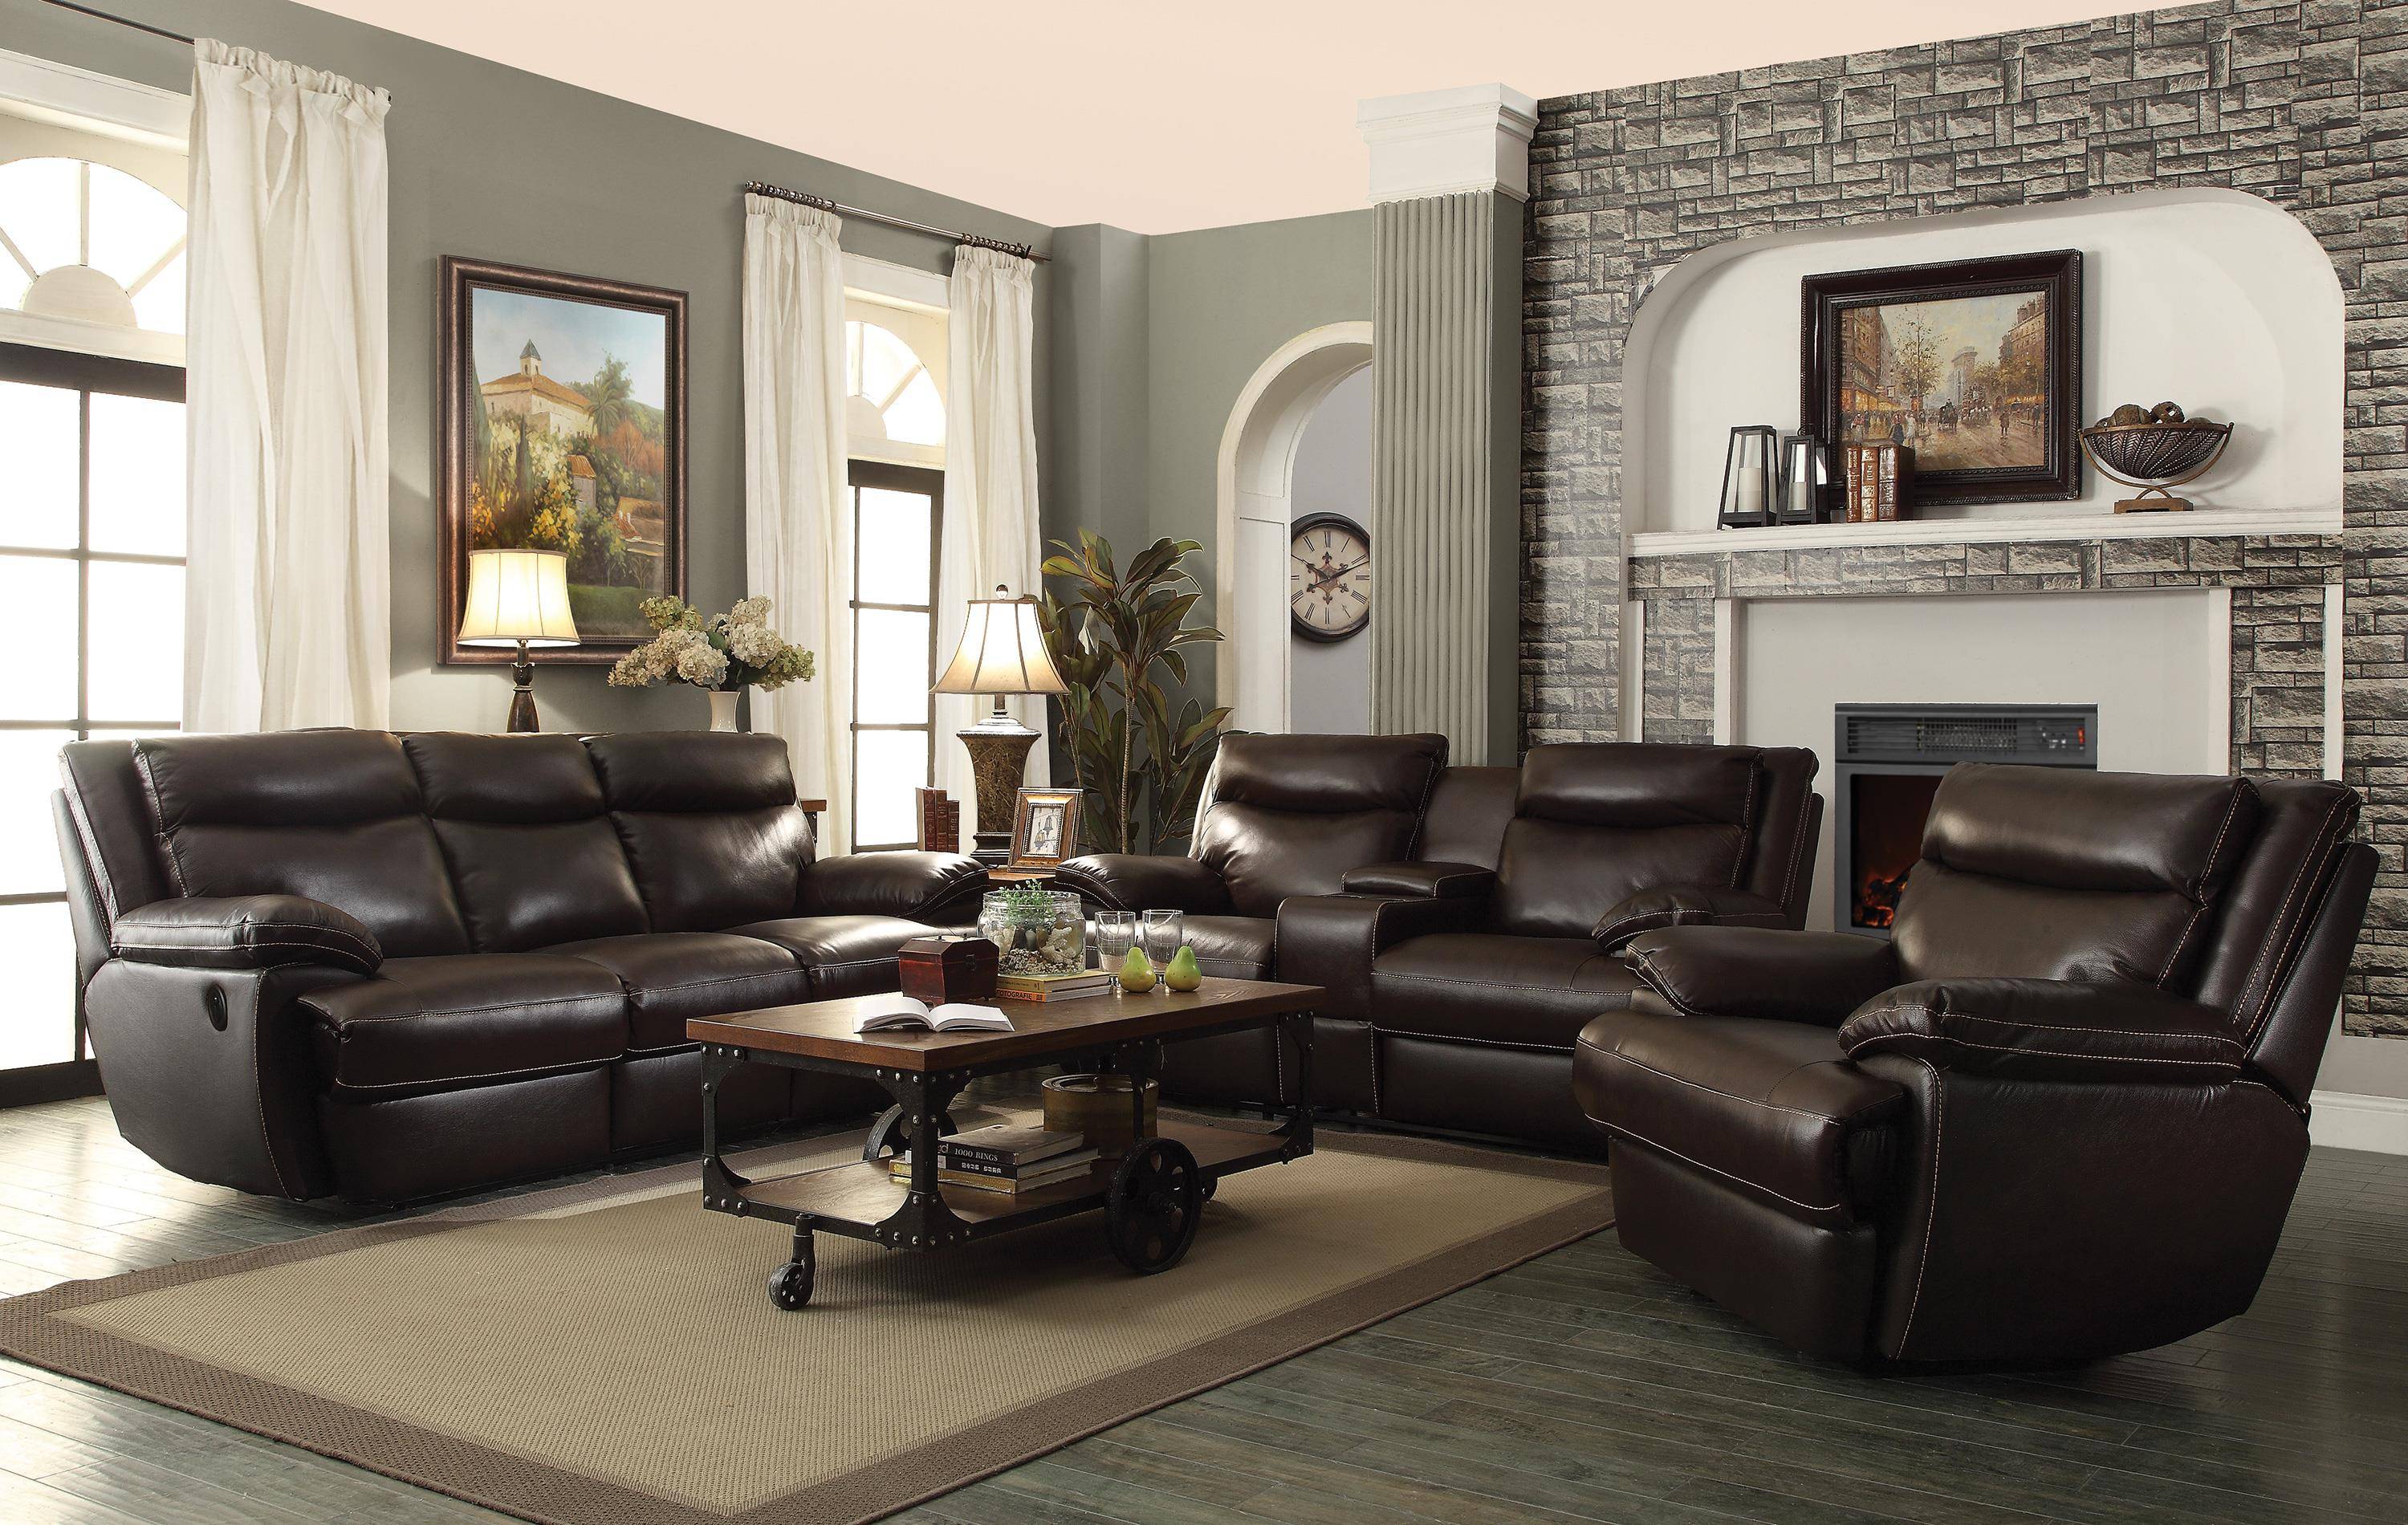 Coaster MacPherson Power Reclining Living Room Group - Item Number: 60181 Living Room Group 2